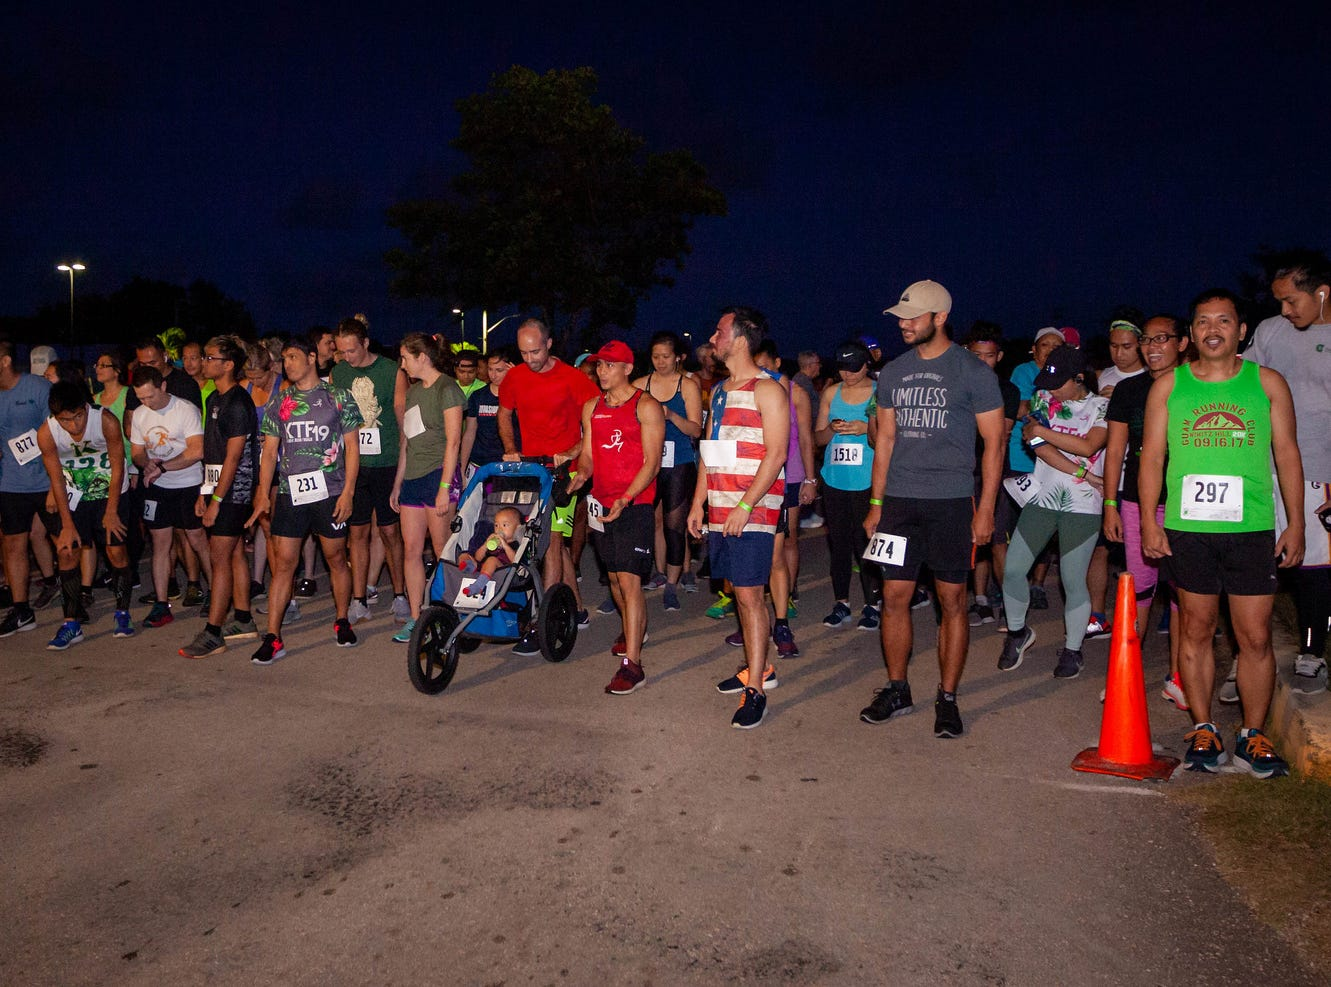 Runners line up at the starting line for the University of Guam Annual Charter Day 5K on March 12.